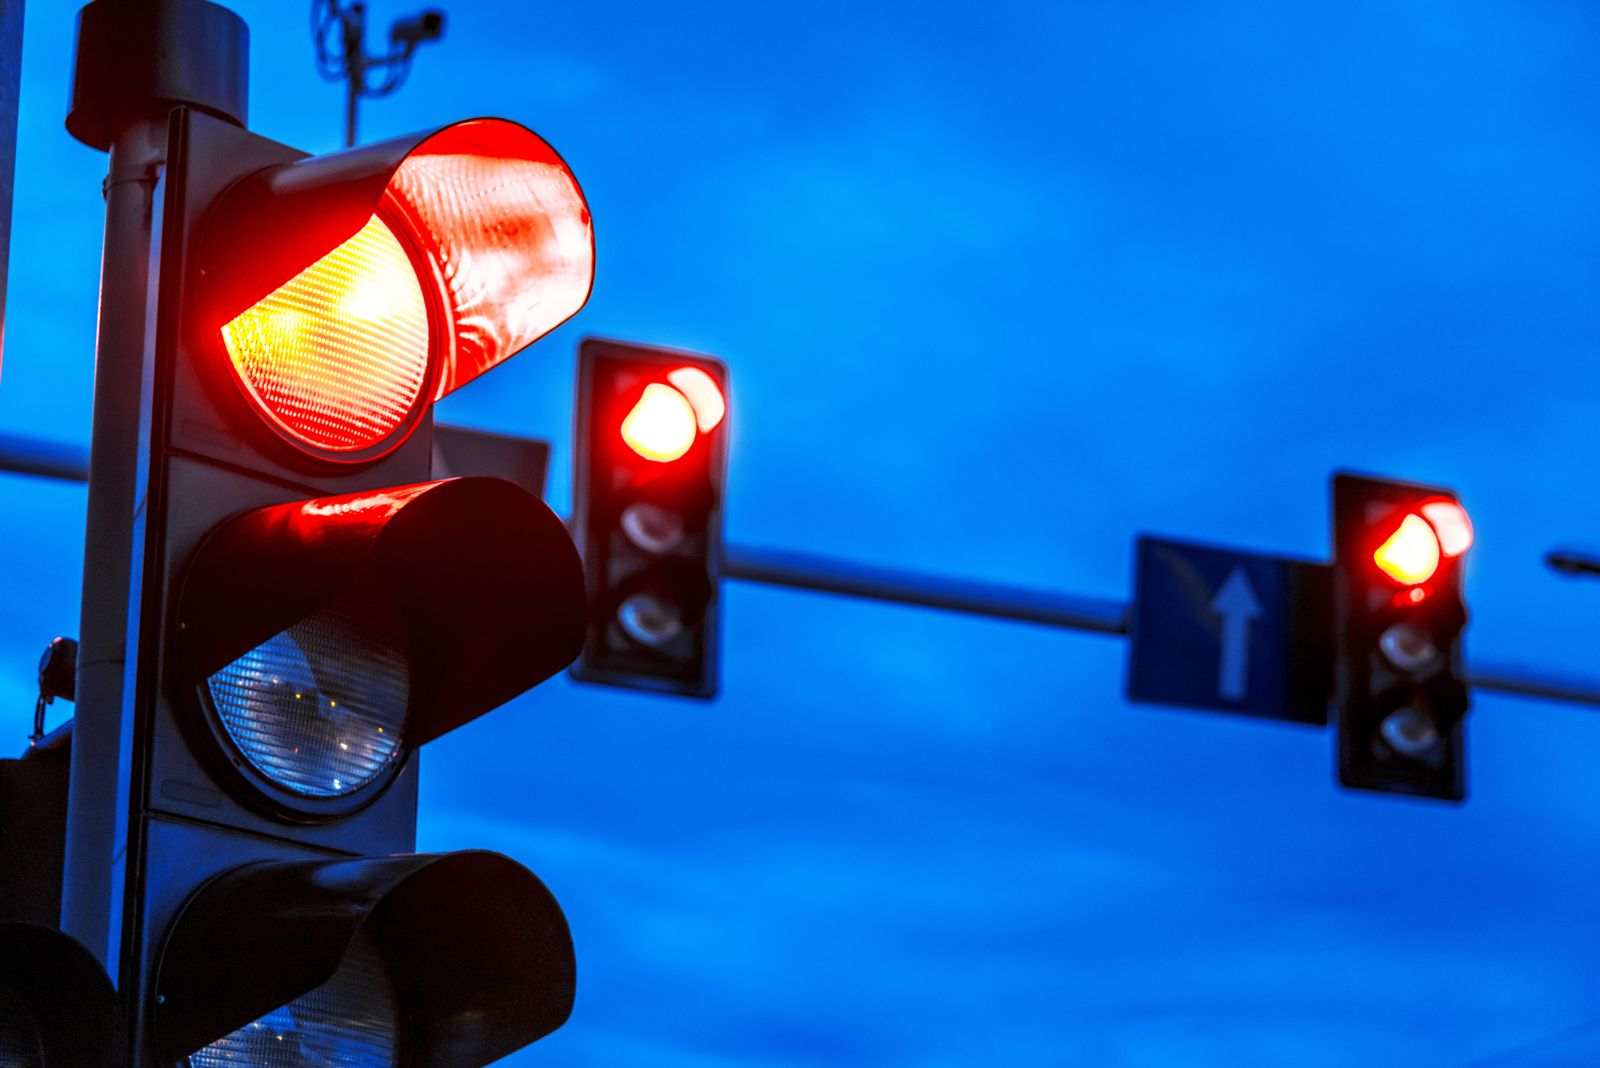 Red Light Car Accidents In Texas The Hart Law Firm